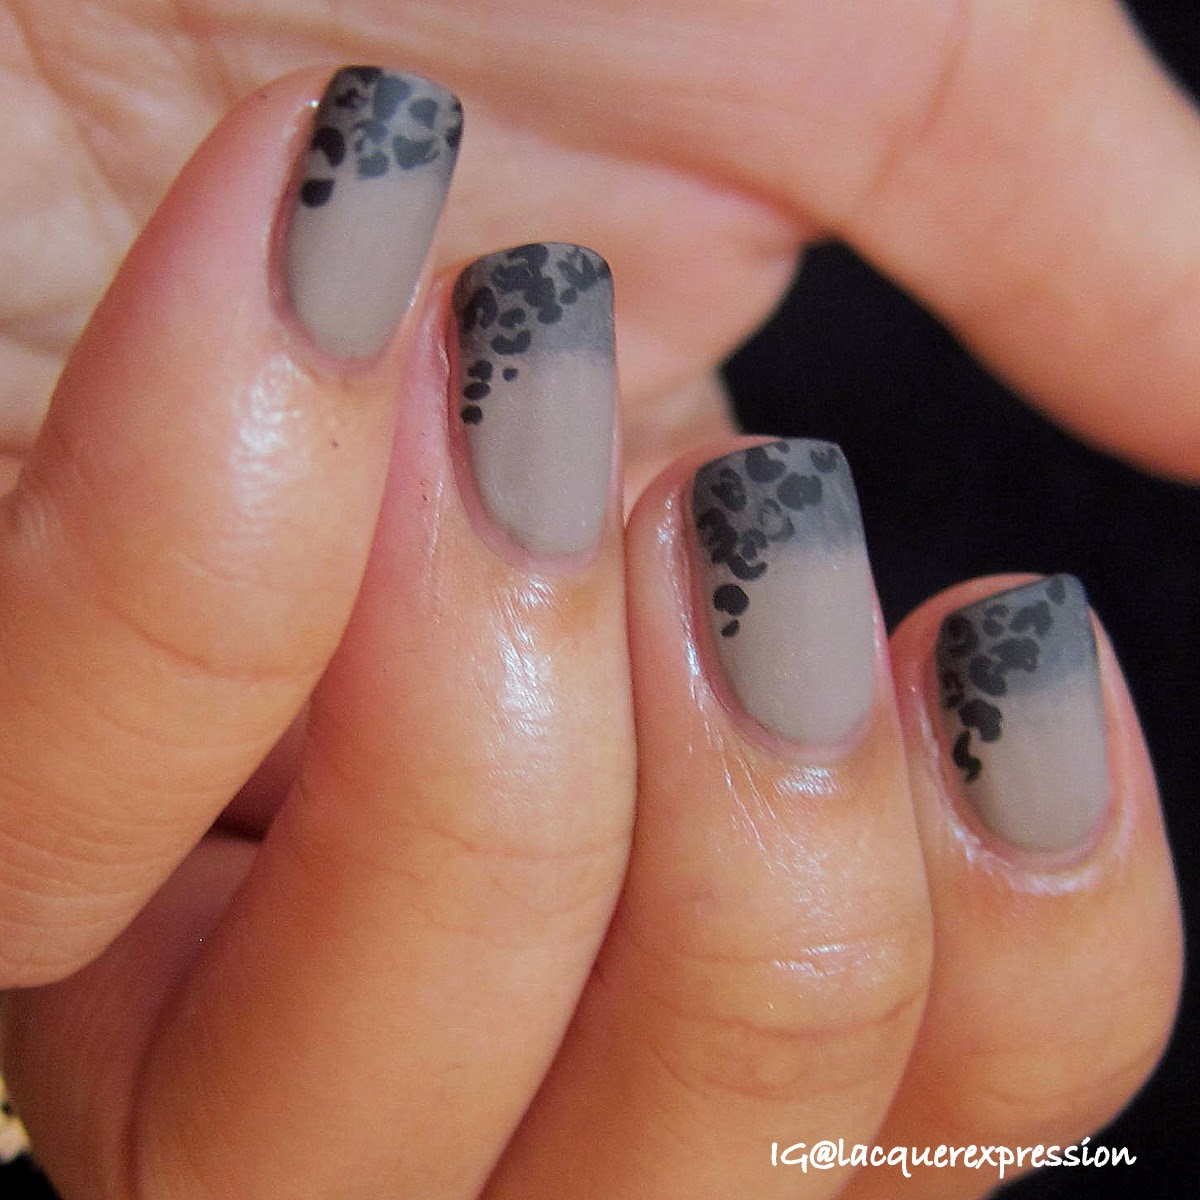 Sideway leopard print nail art manicure over gradient using French tip vinyls from Glam My Mani.